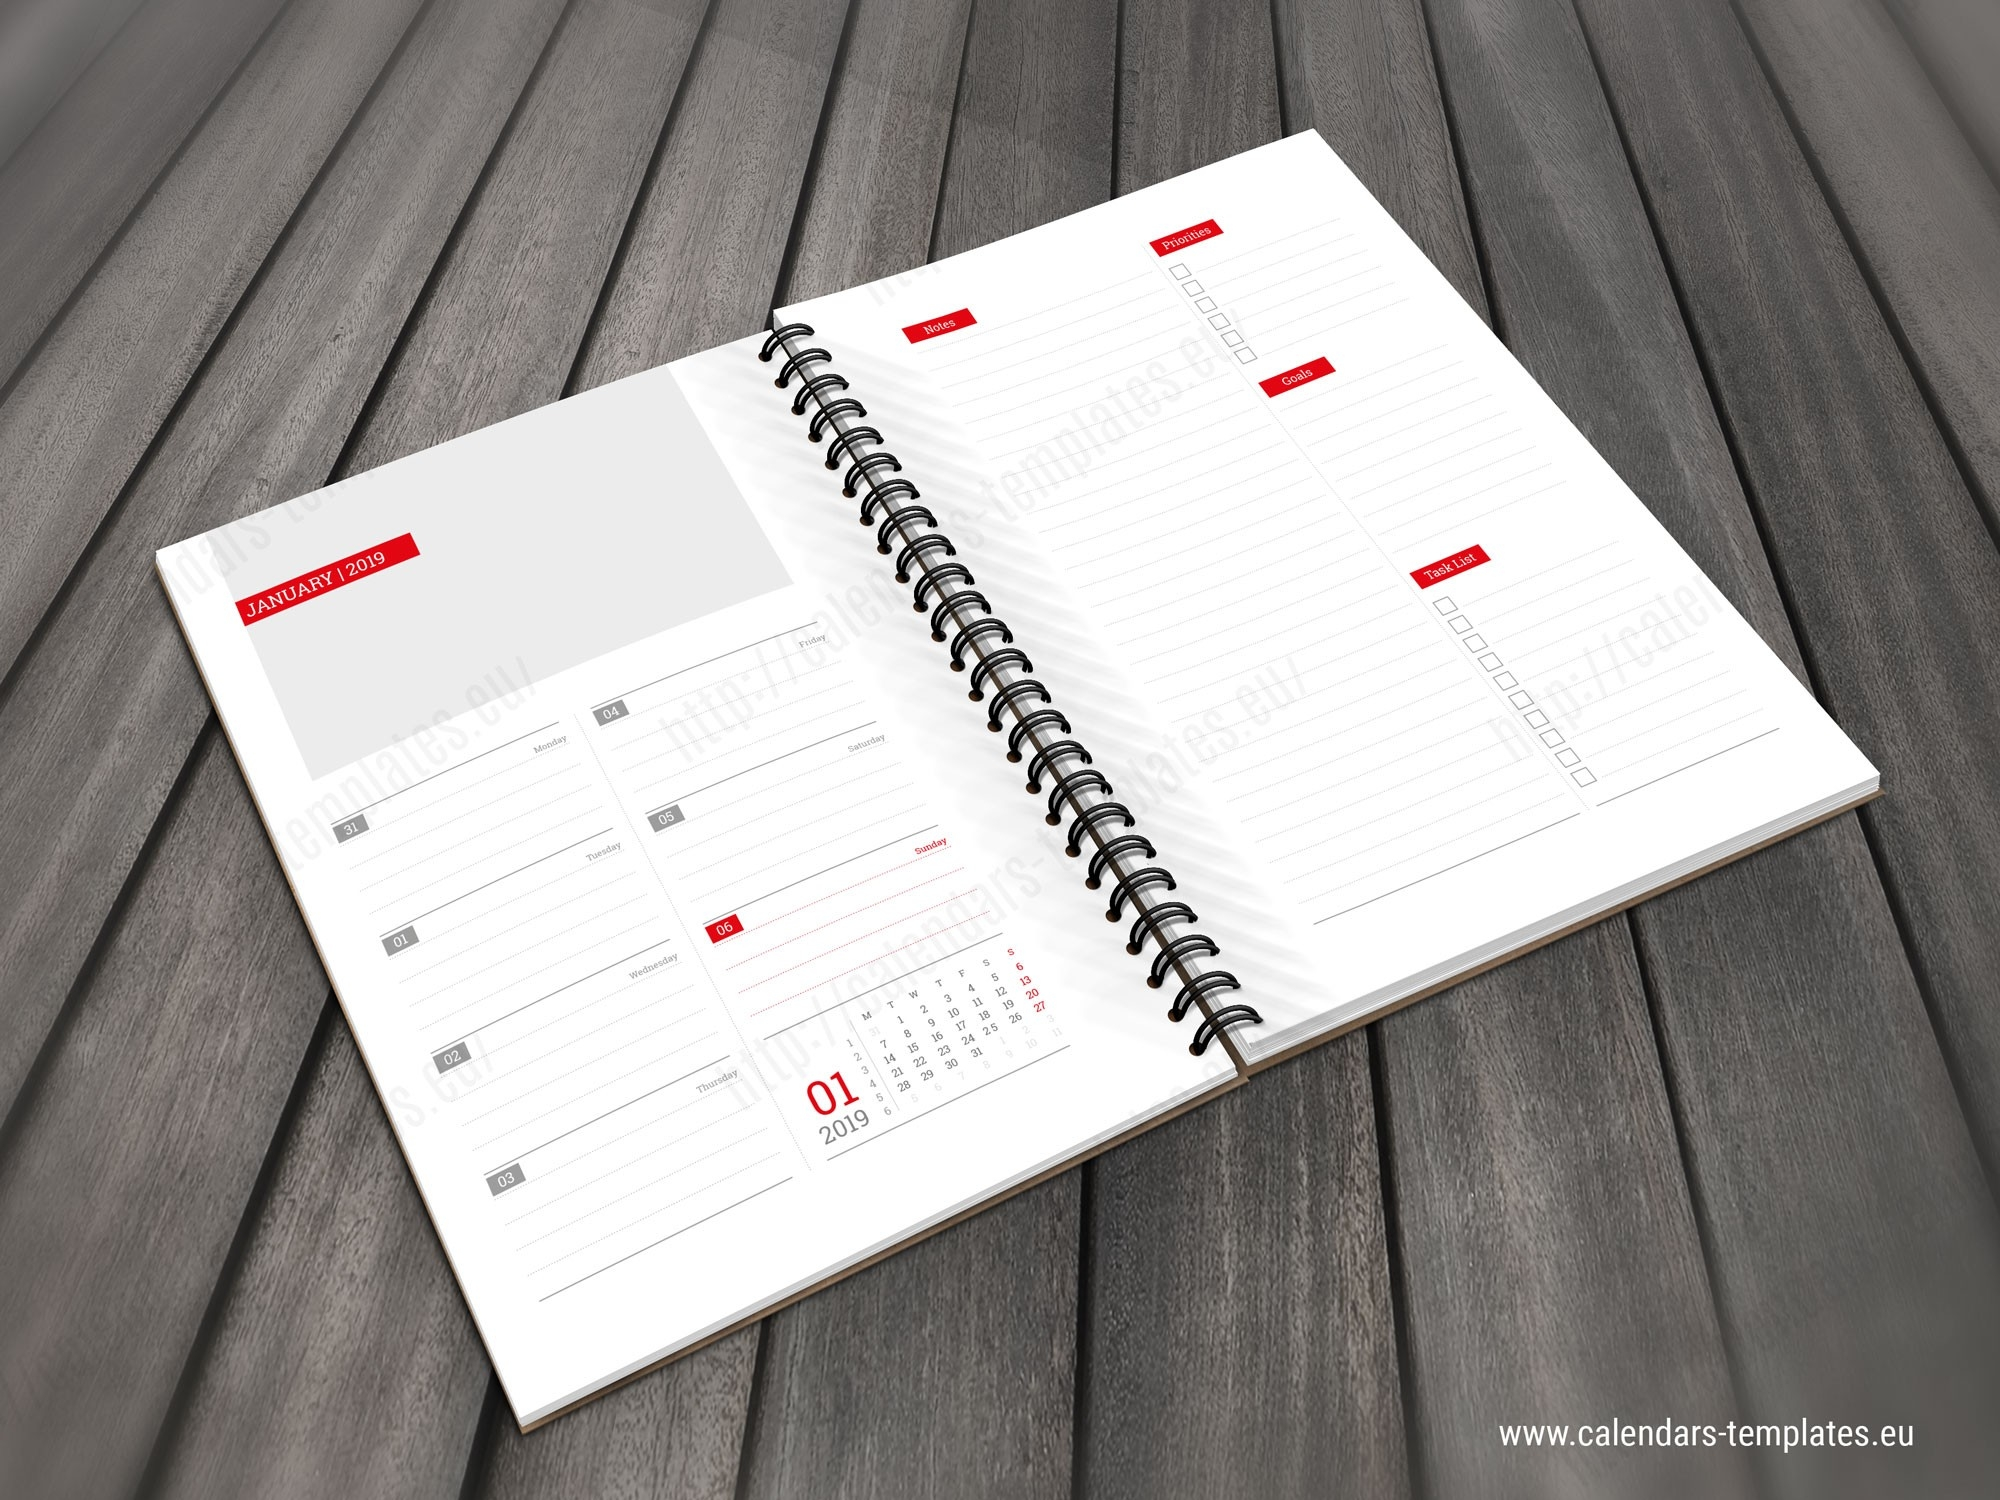 2019 Daily Planner Notebook Pd-W4 | Template-Planner Templates For Indesign